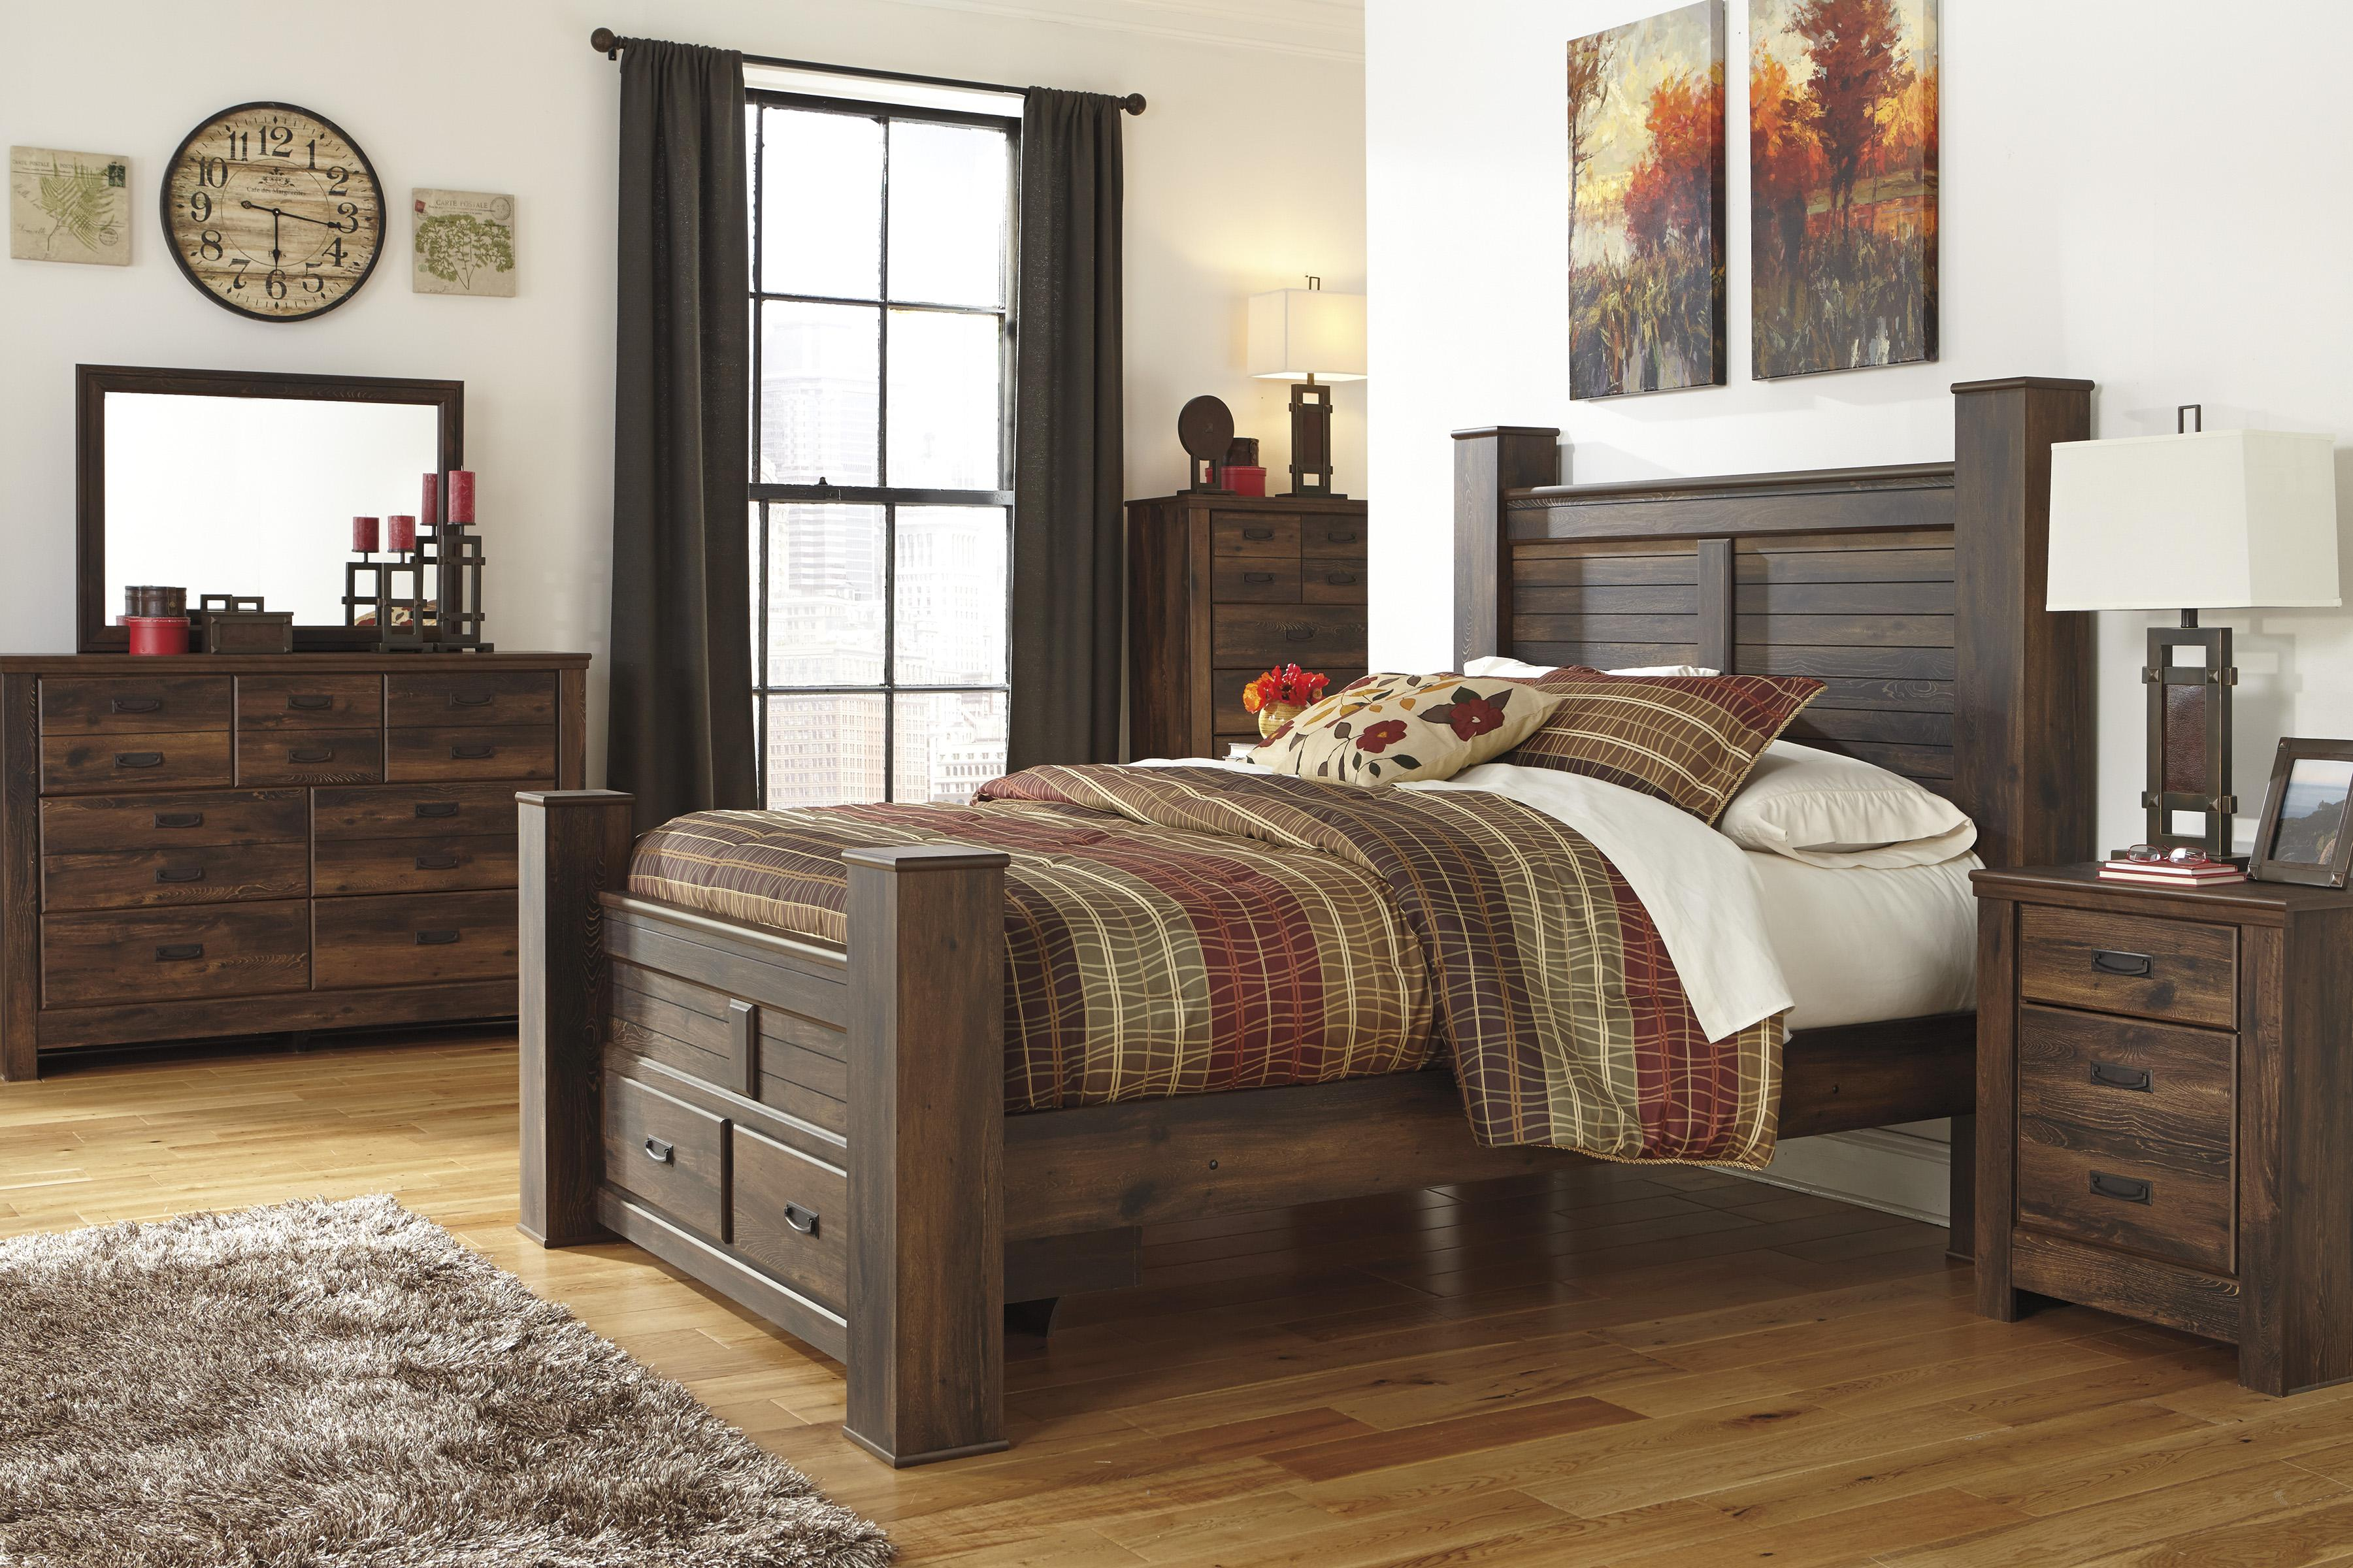 Signature Design by Ashley Quinden Queen Bedroom Group - Item Number: B246 Q Bedroom Group 3